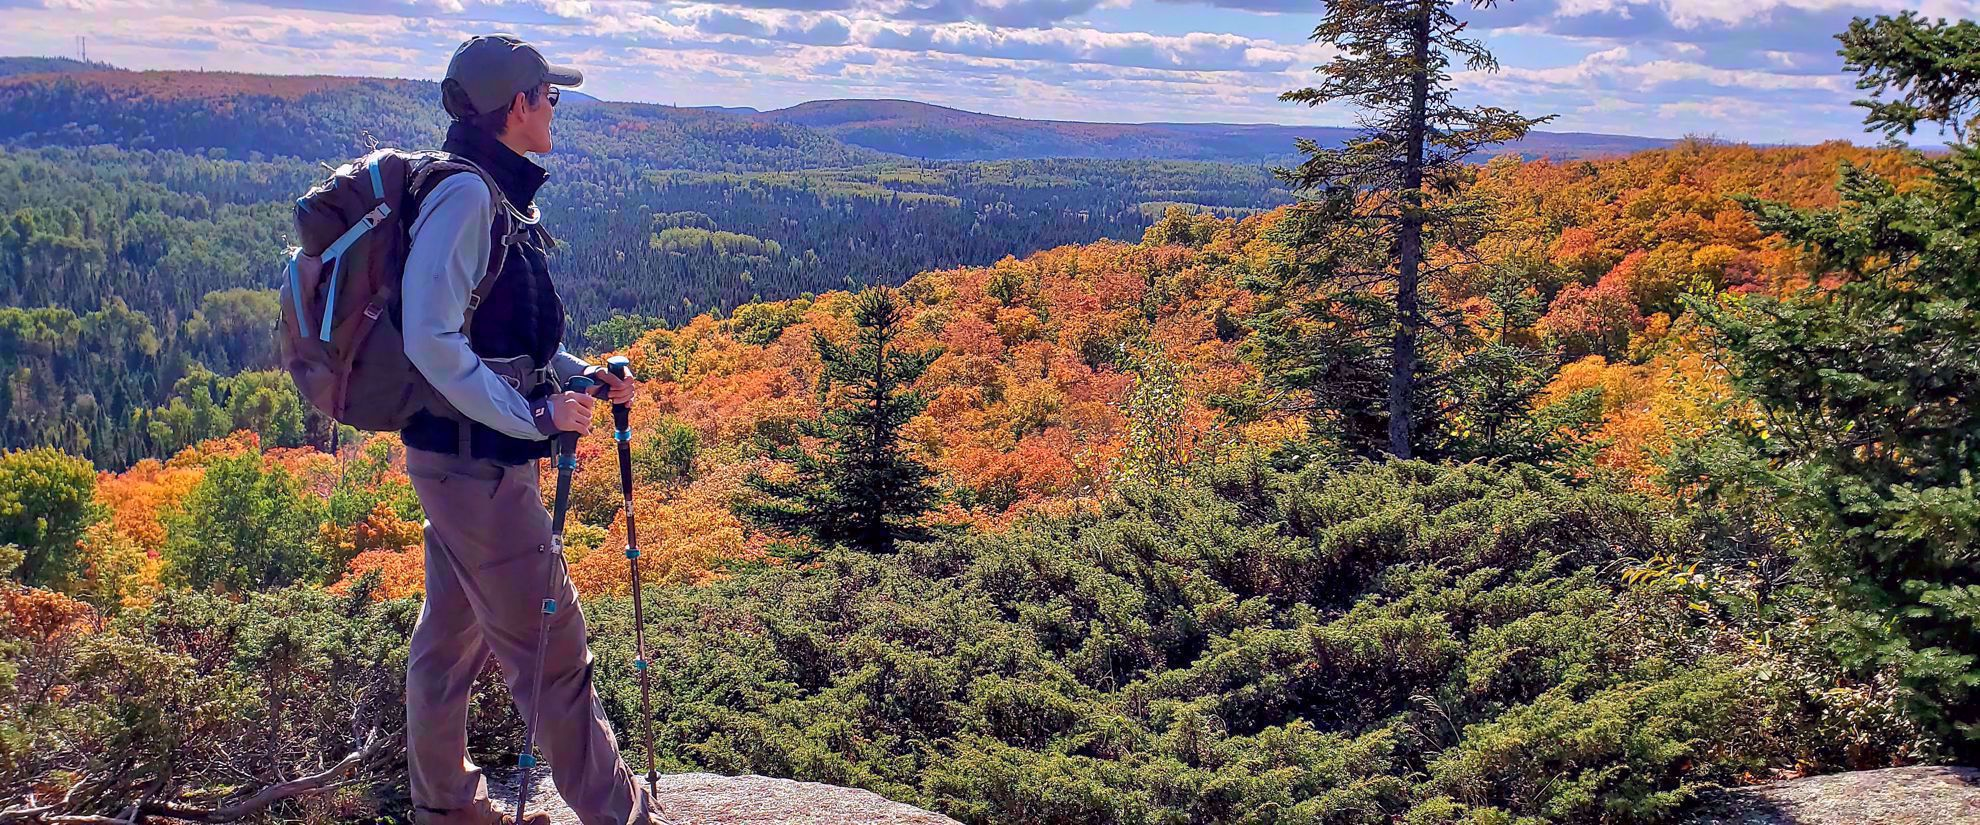 Hiking the superior hiking trail in fall